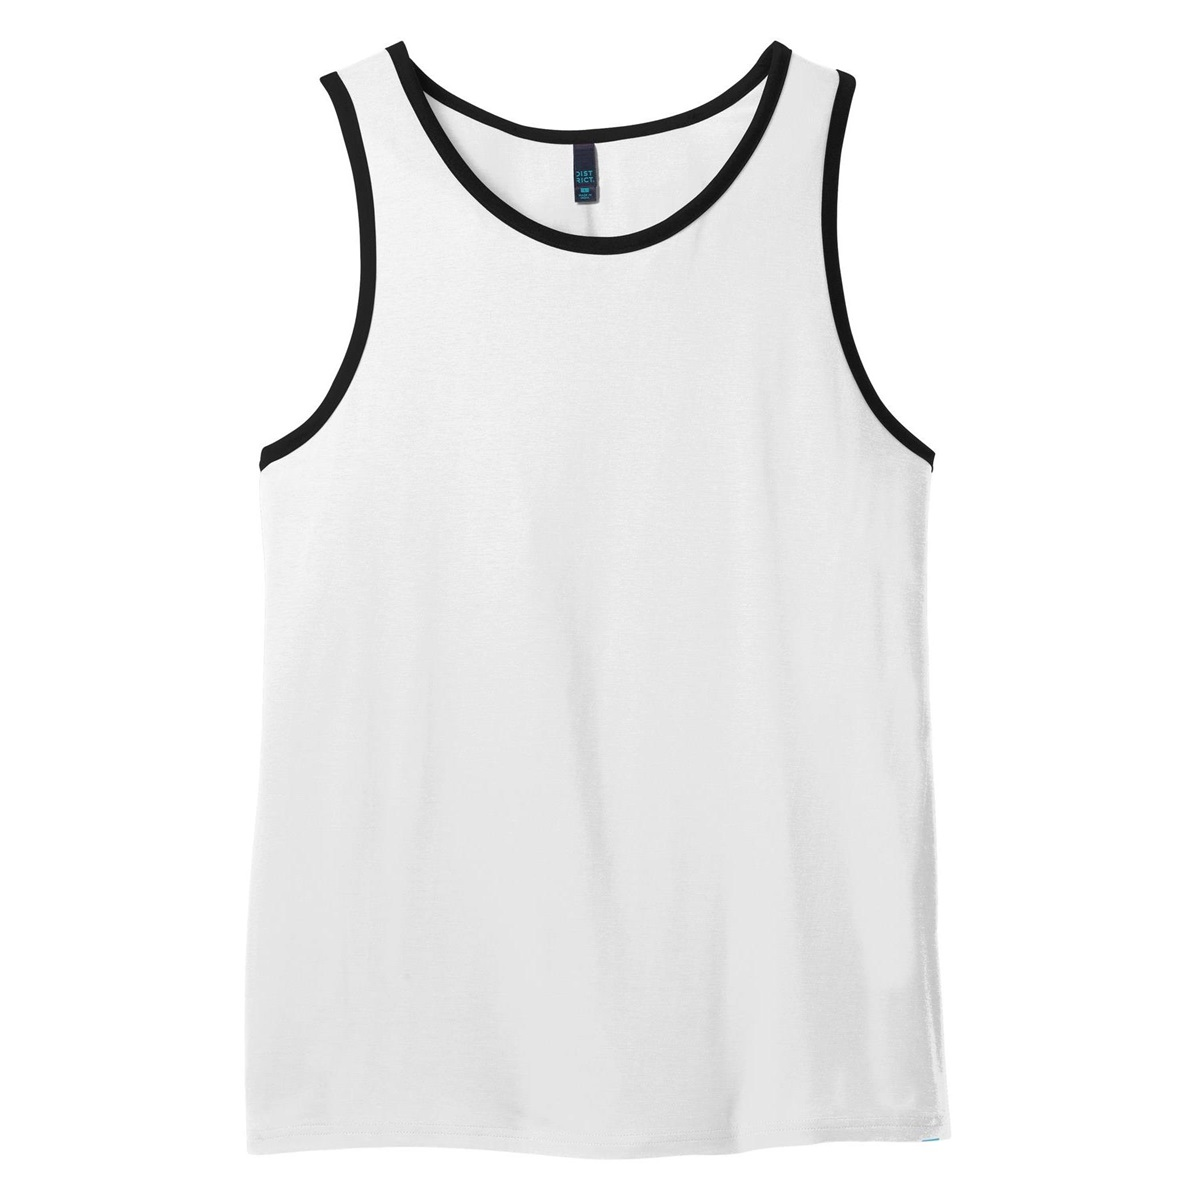 Black & White Tank Tops. invalid category id. Black & White Tank Tops. Showing 35 of 35 results that match your query. Search Product Result. Product - Womens Plus Size Sexy Solid Sleeveless Bling Tank Back Open Bodysuit XL-Gold. Product Image. Price $ Product Title.